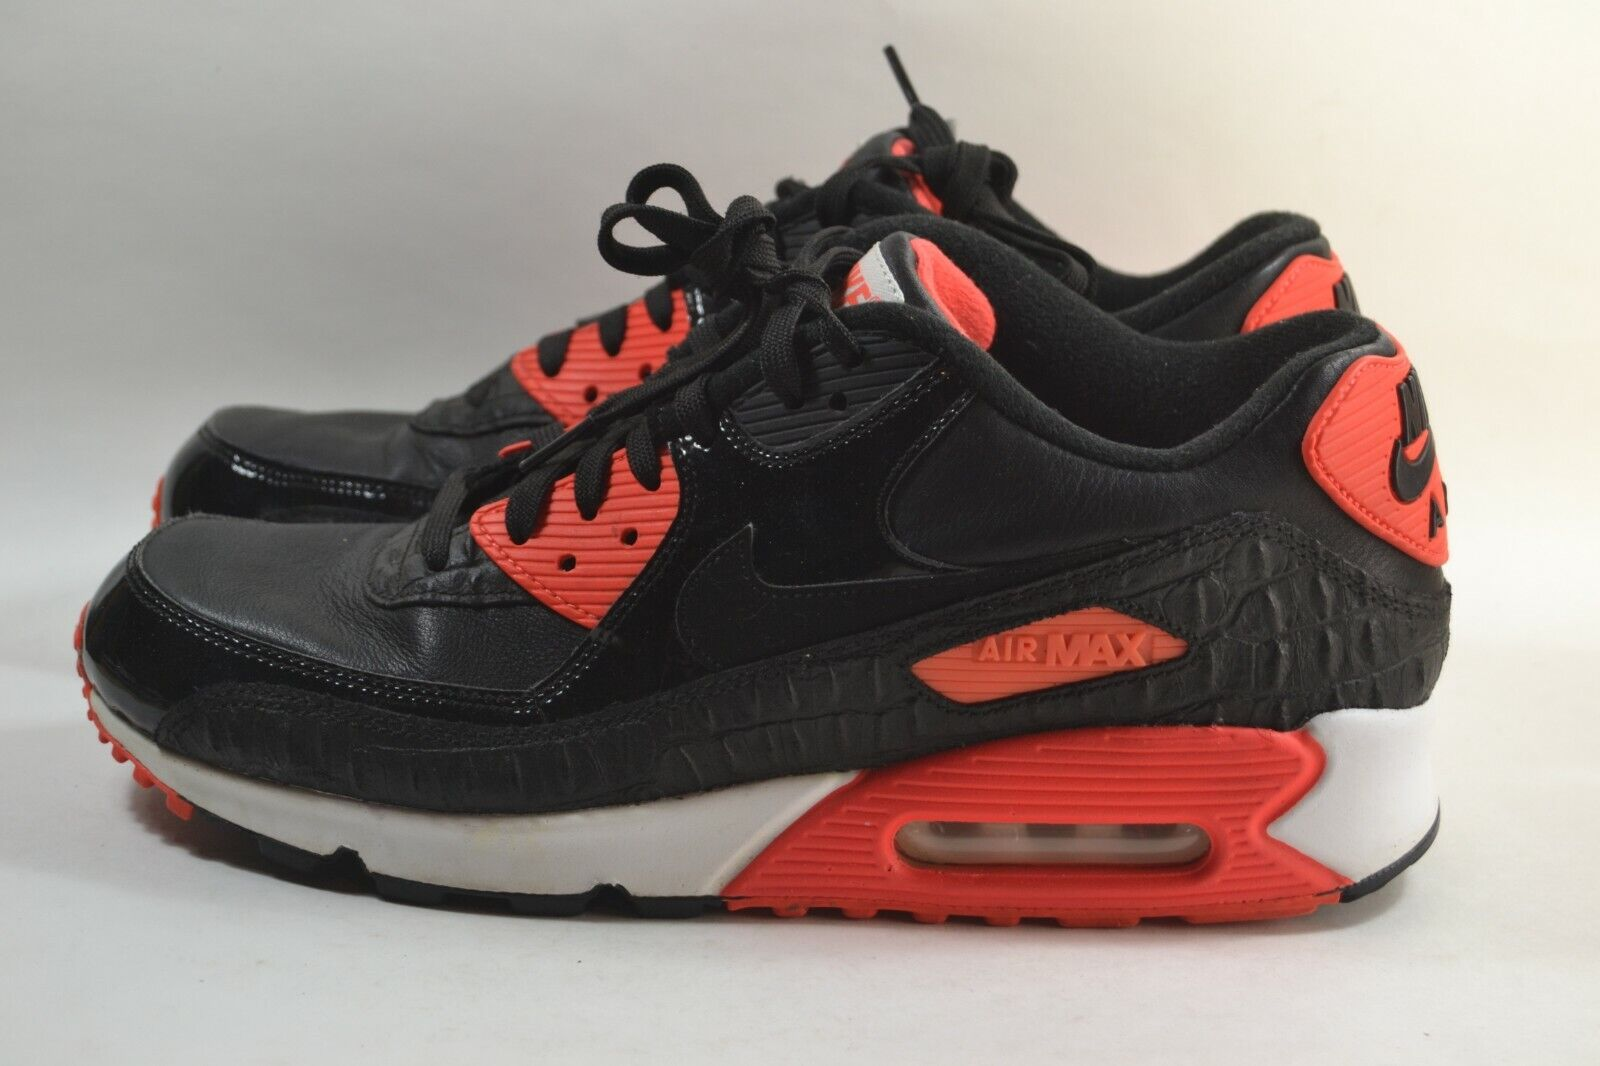 Pre-owned Mens Nike Air Max 90 Black Infrared Croc Anniversary 725235-006